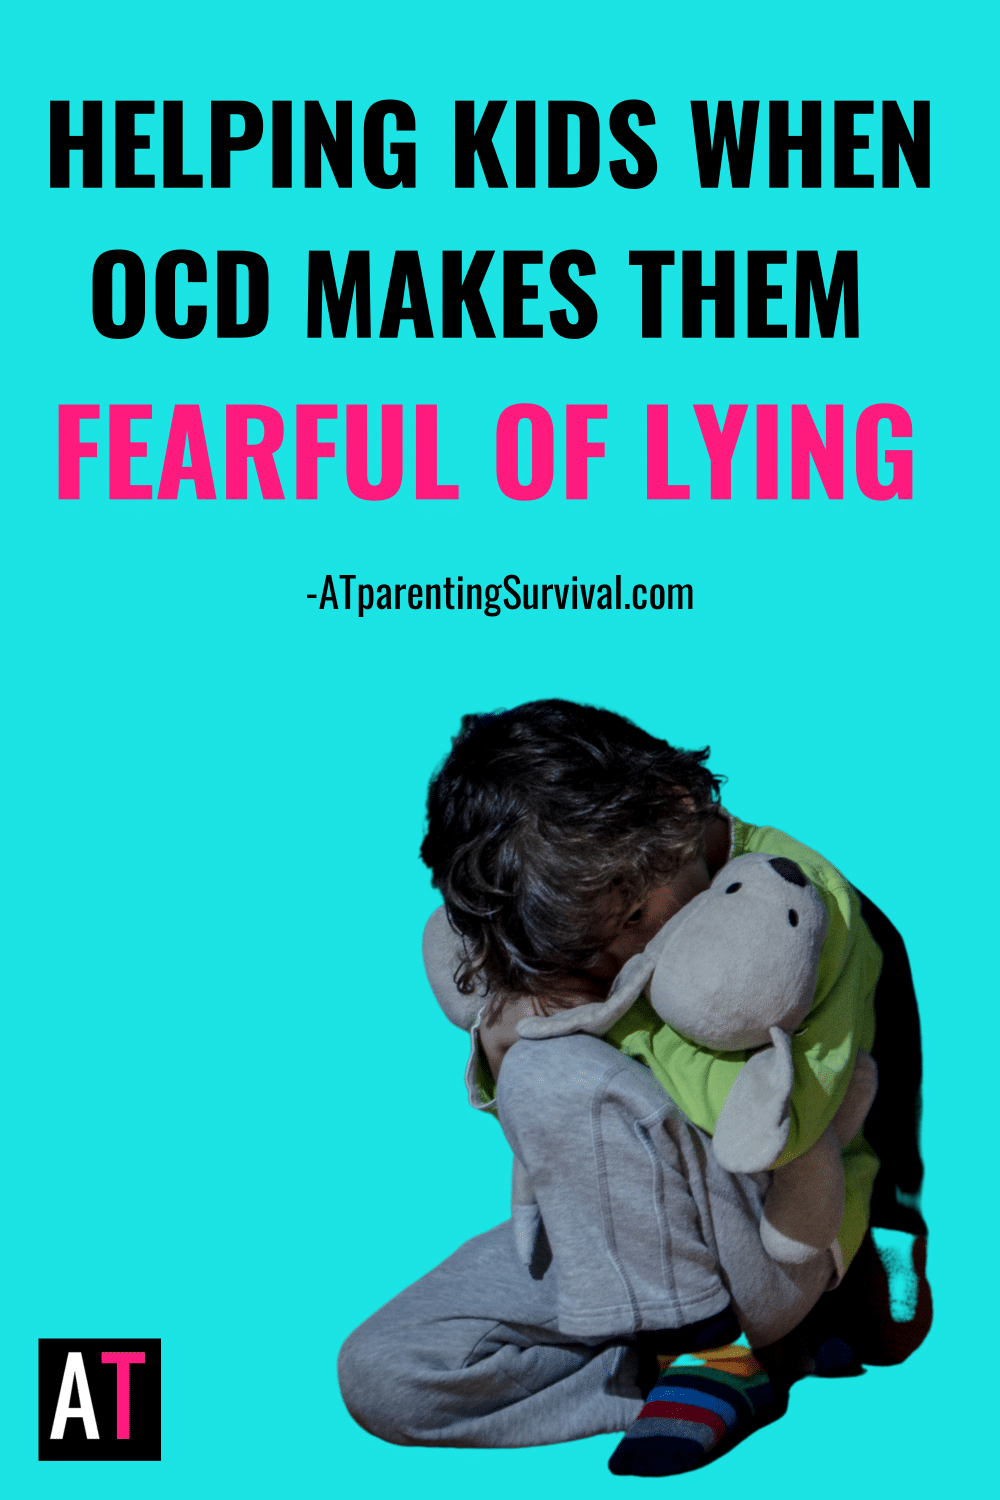 Helping Kids When OCD Makes them Fearful of Lying